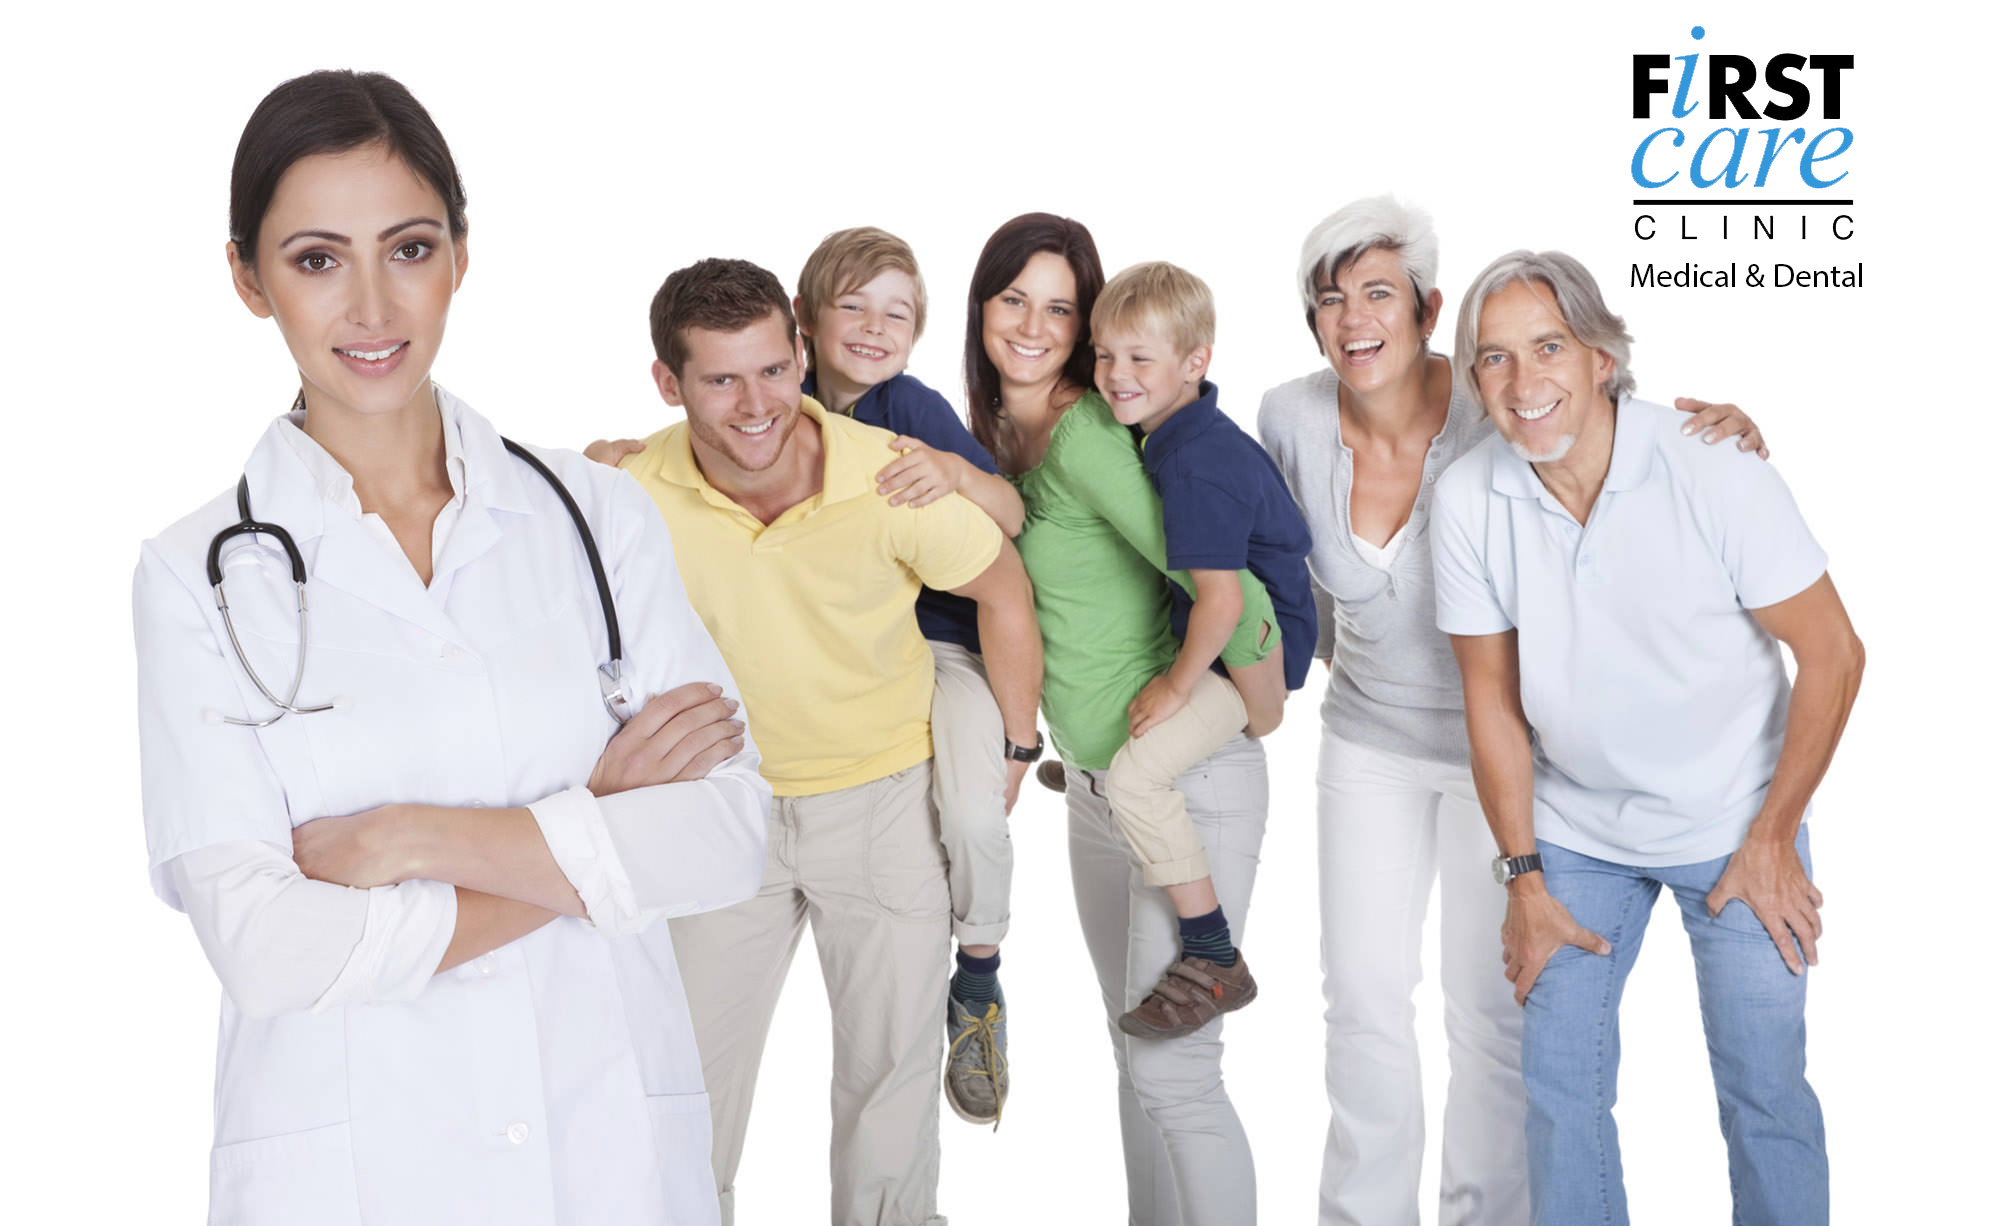 First Care Clinic | Family Health Care in Hays, KS